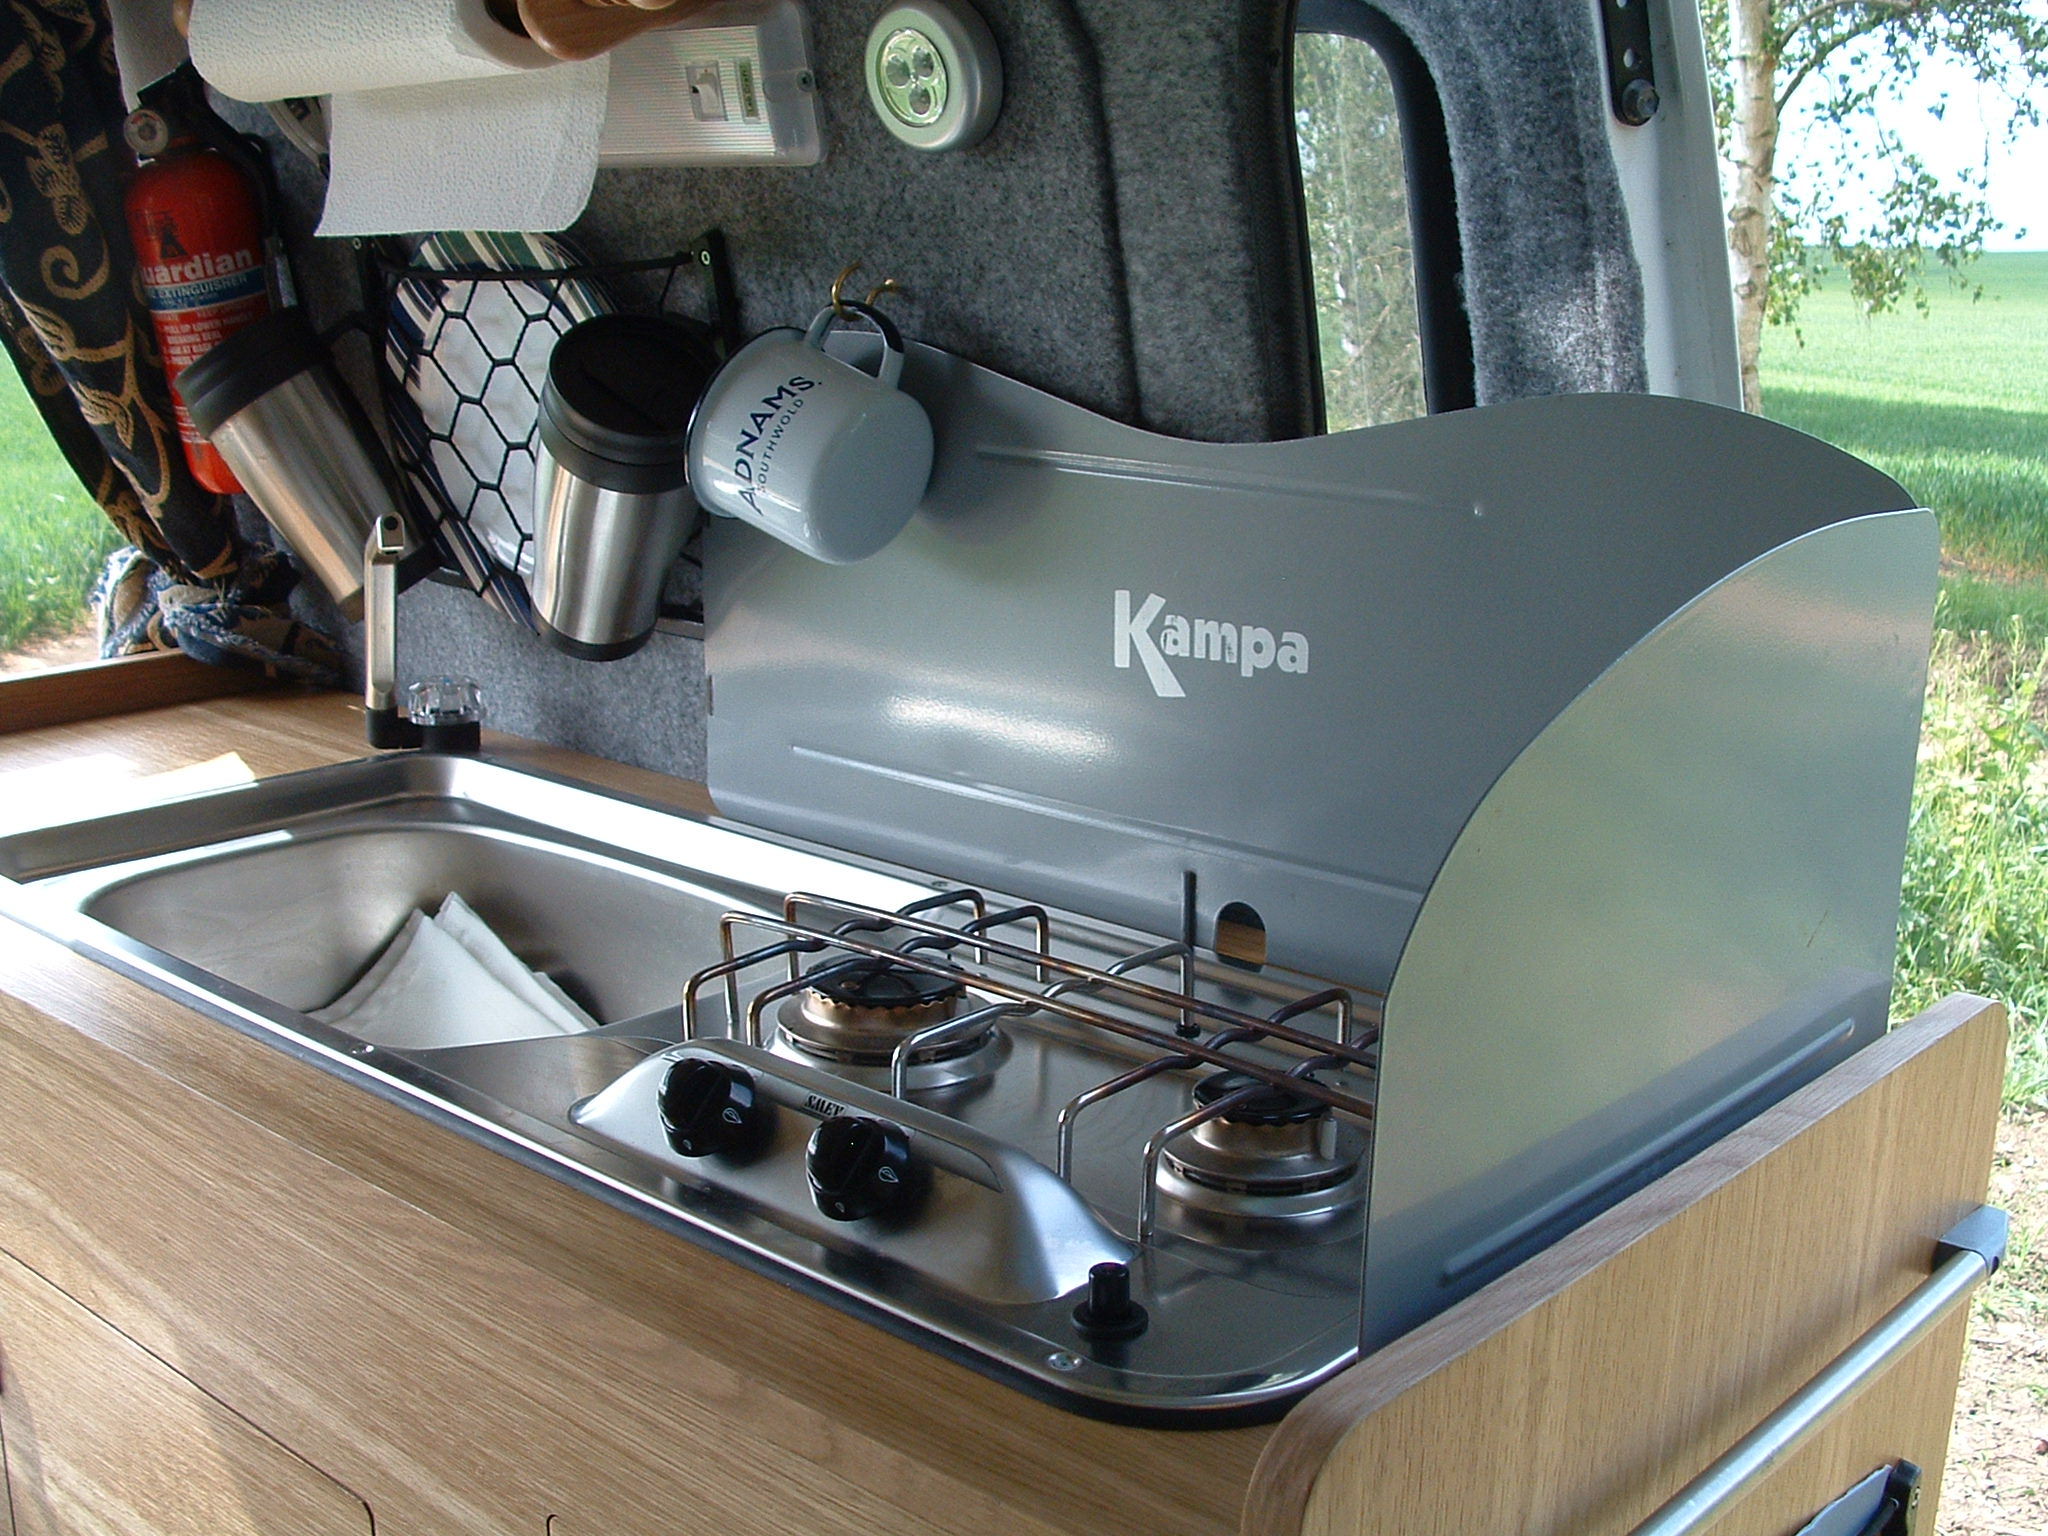 Caravan With Slide Out Kitchen Interior Idea Caravan Campers Space Airstream Dream